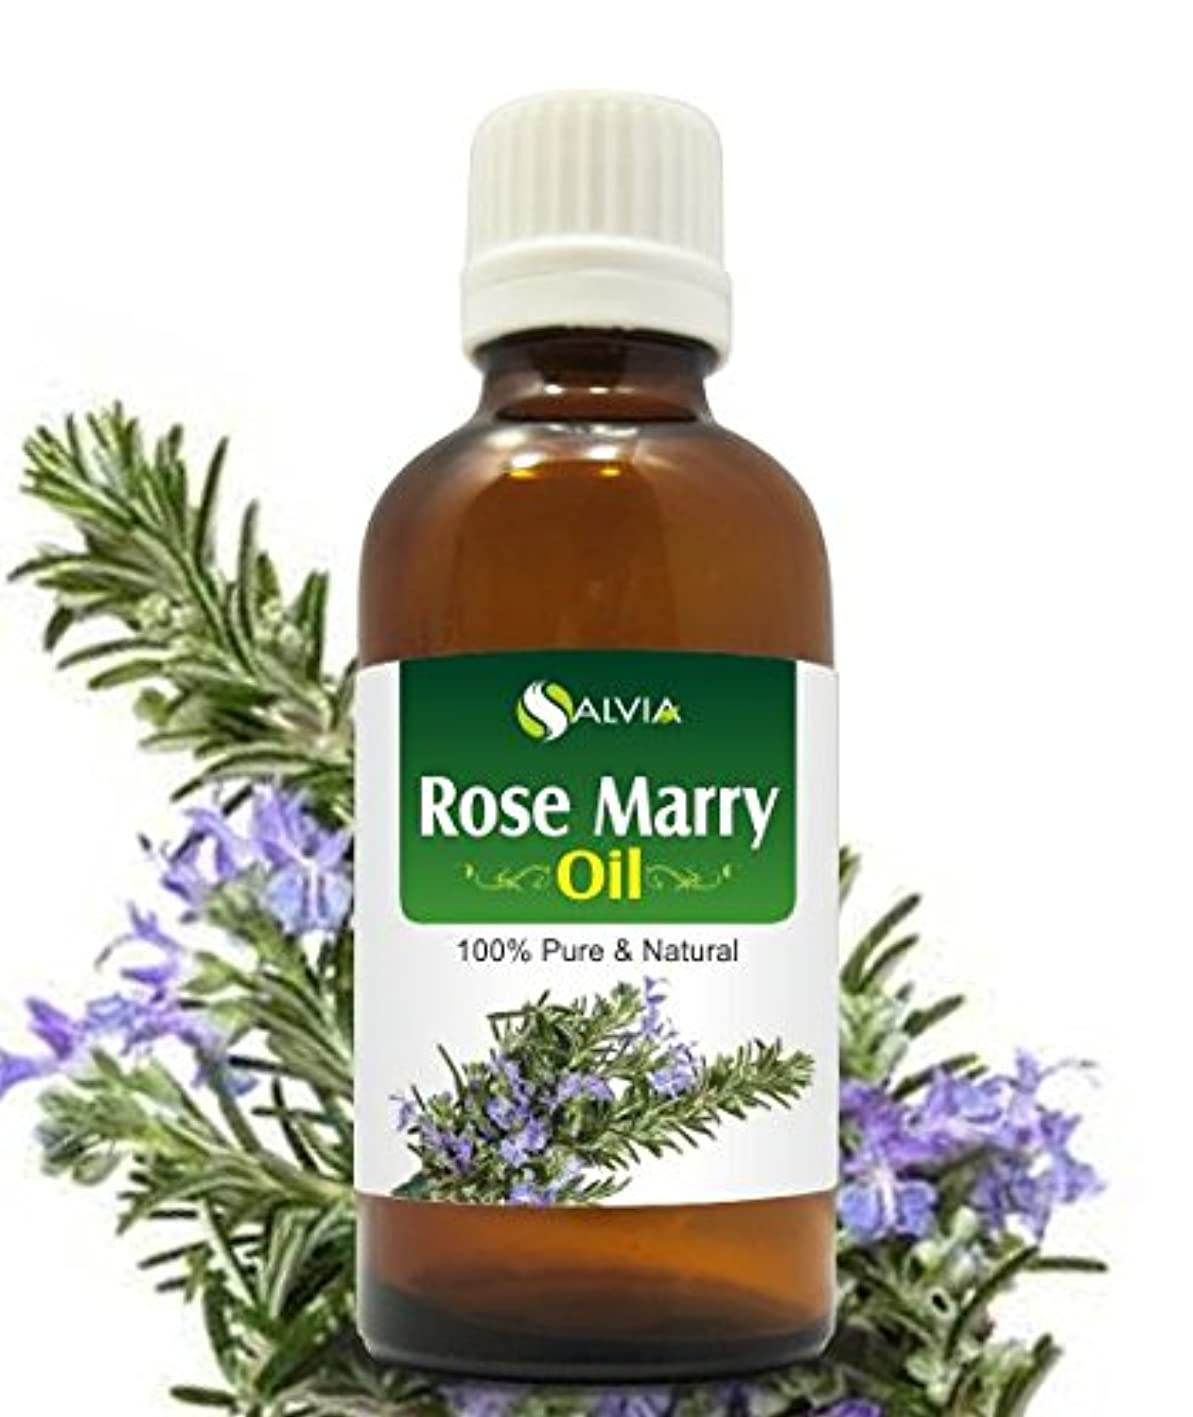 ROSE MARY OIL 100% NATURAL PURE UNDILUTED UNCUT ESSENTIAL OIL 15ML